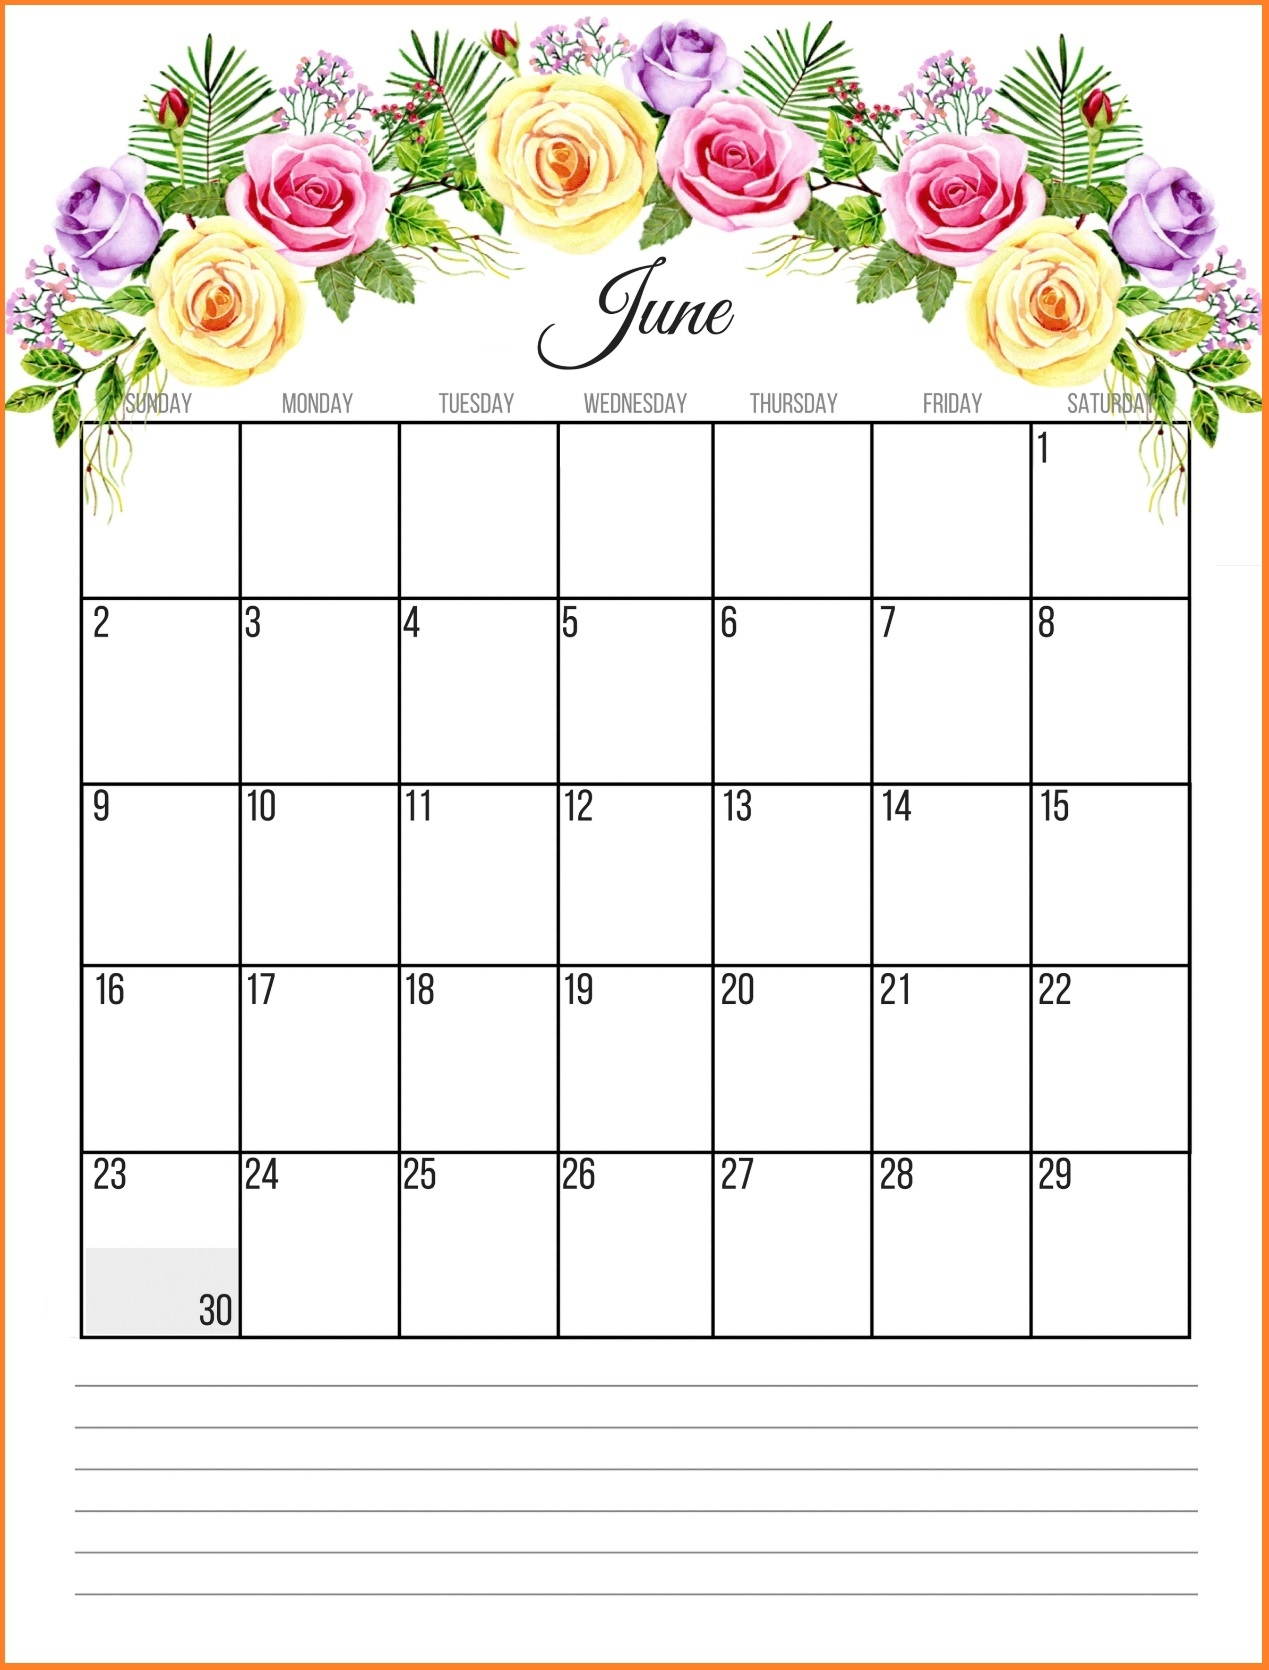 printable floral 2019 monthly calendar ::June 2019 Calendar